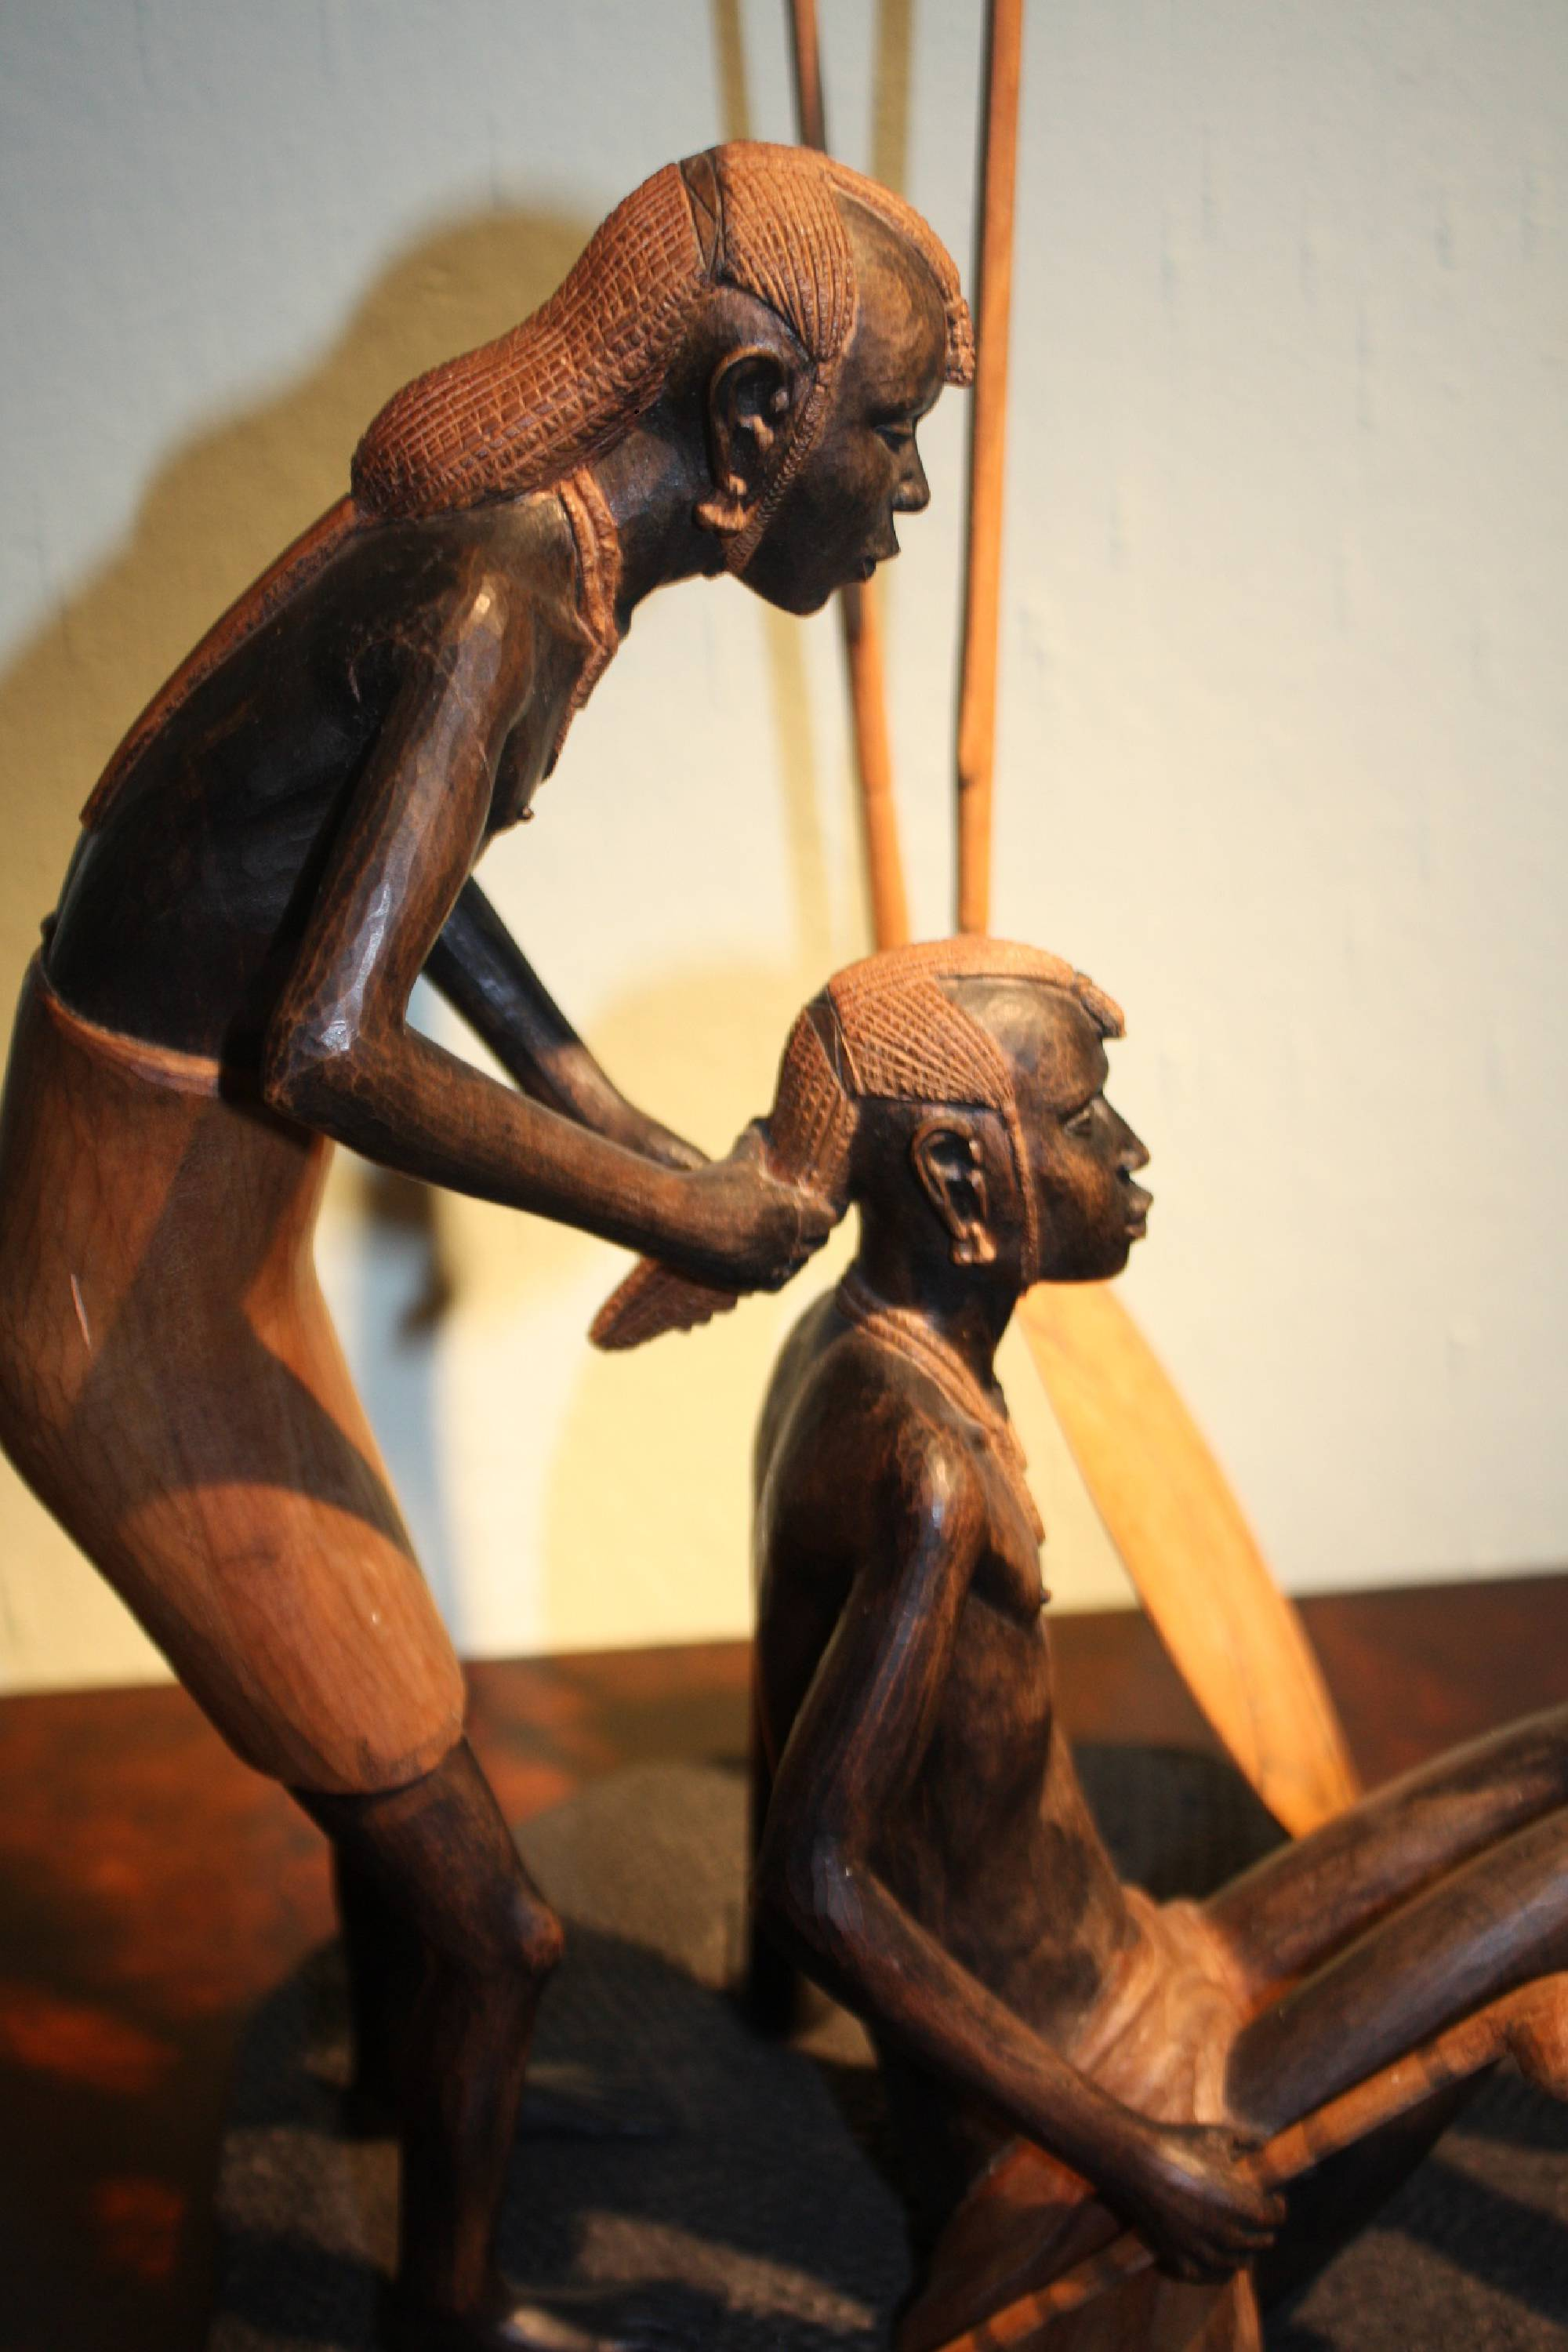 East-African handcarved wooden tribal Massai sculpture showing two hunters